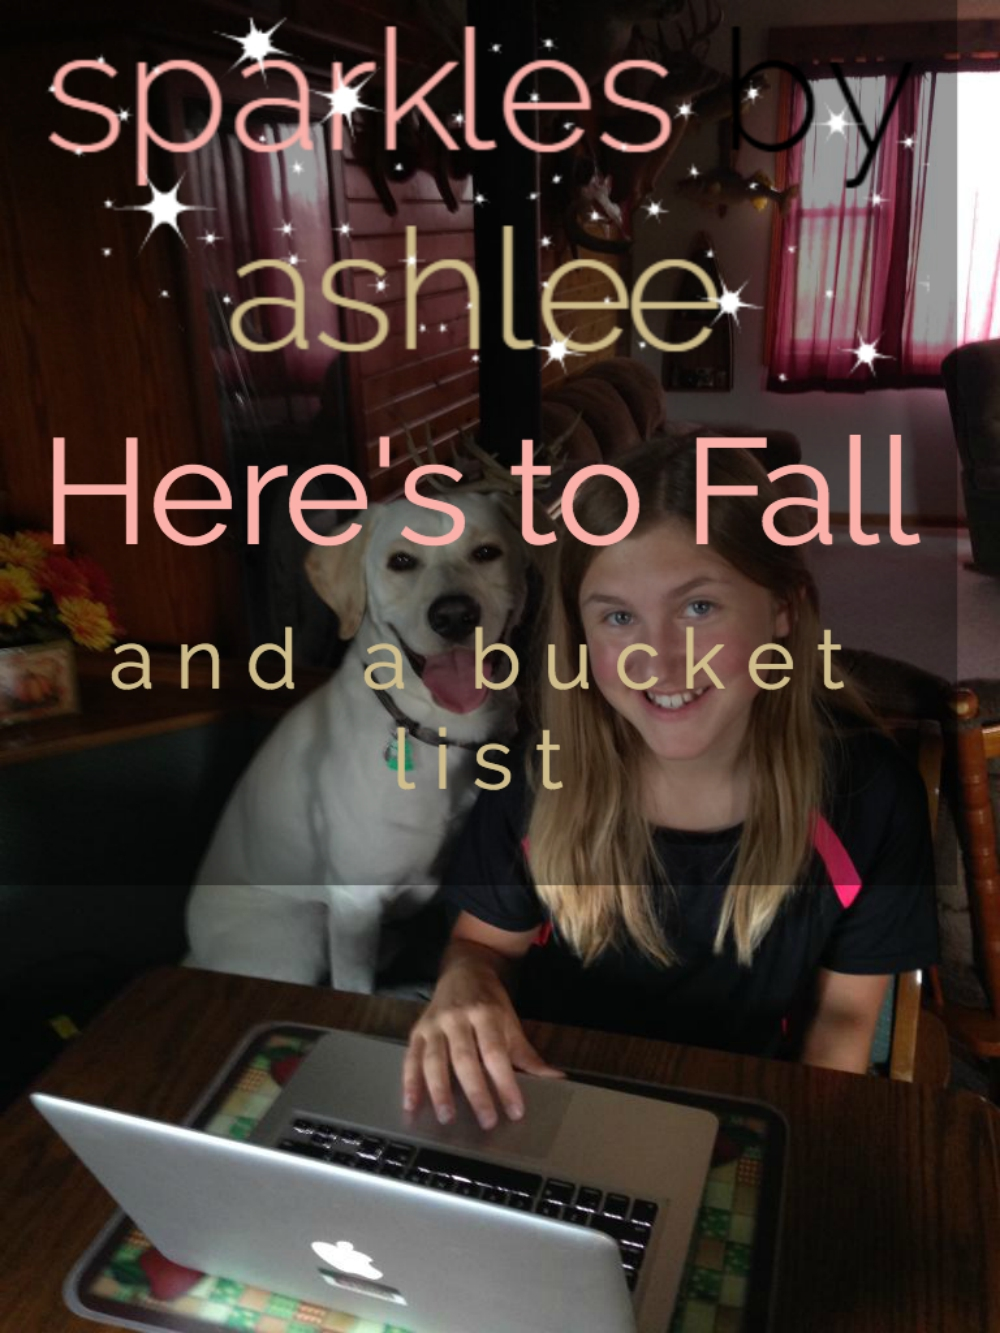 Lets-Set-Goals-Heres-to-Fall-and-a-Bucket-List-Sparkles-by-Ashlee.jpg